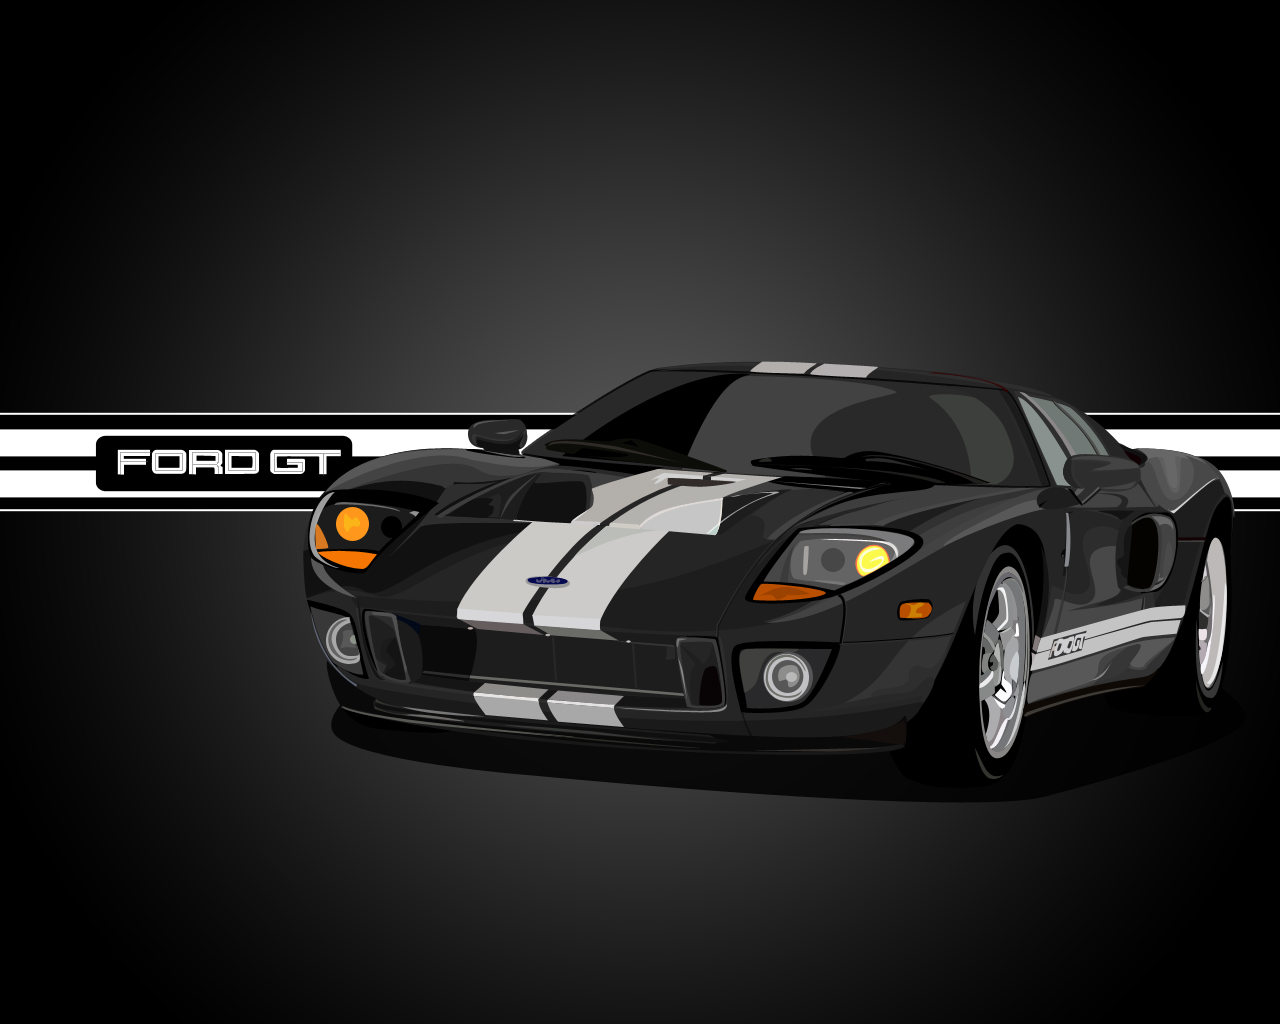 Ford Gt Vector Black Vector Cars Digital Wallpapers